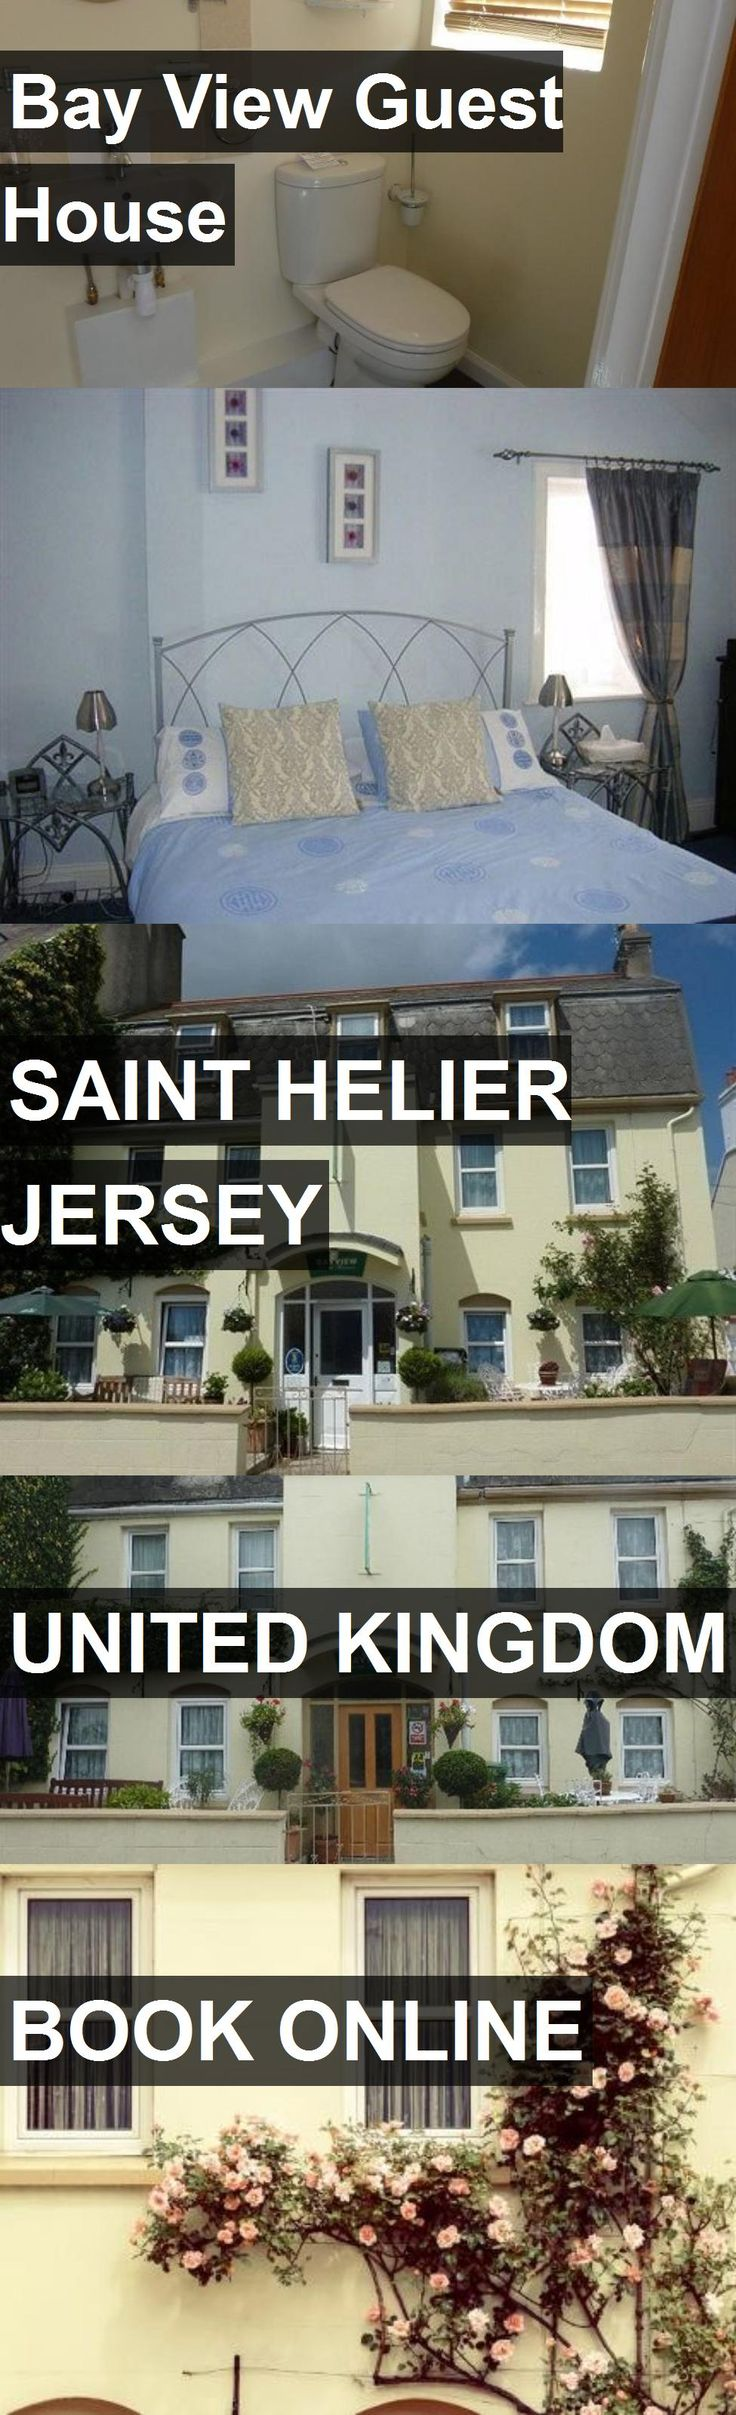 Bay View Guest House in Saint Helier Jersey, United Kingdom. For more information, photos, reviews and best prices please follow the link. #UnitedKingdom #SaintHelierJersey #travel #vacation #guesthouse